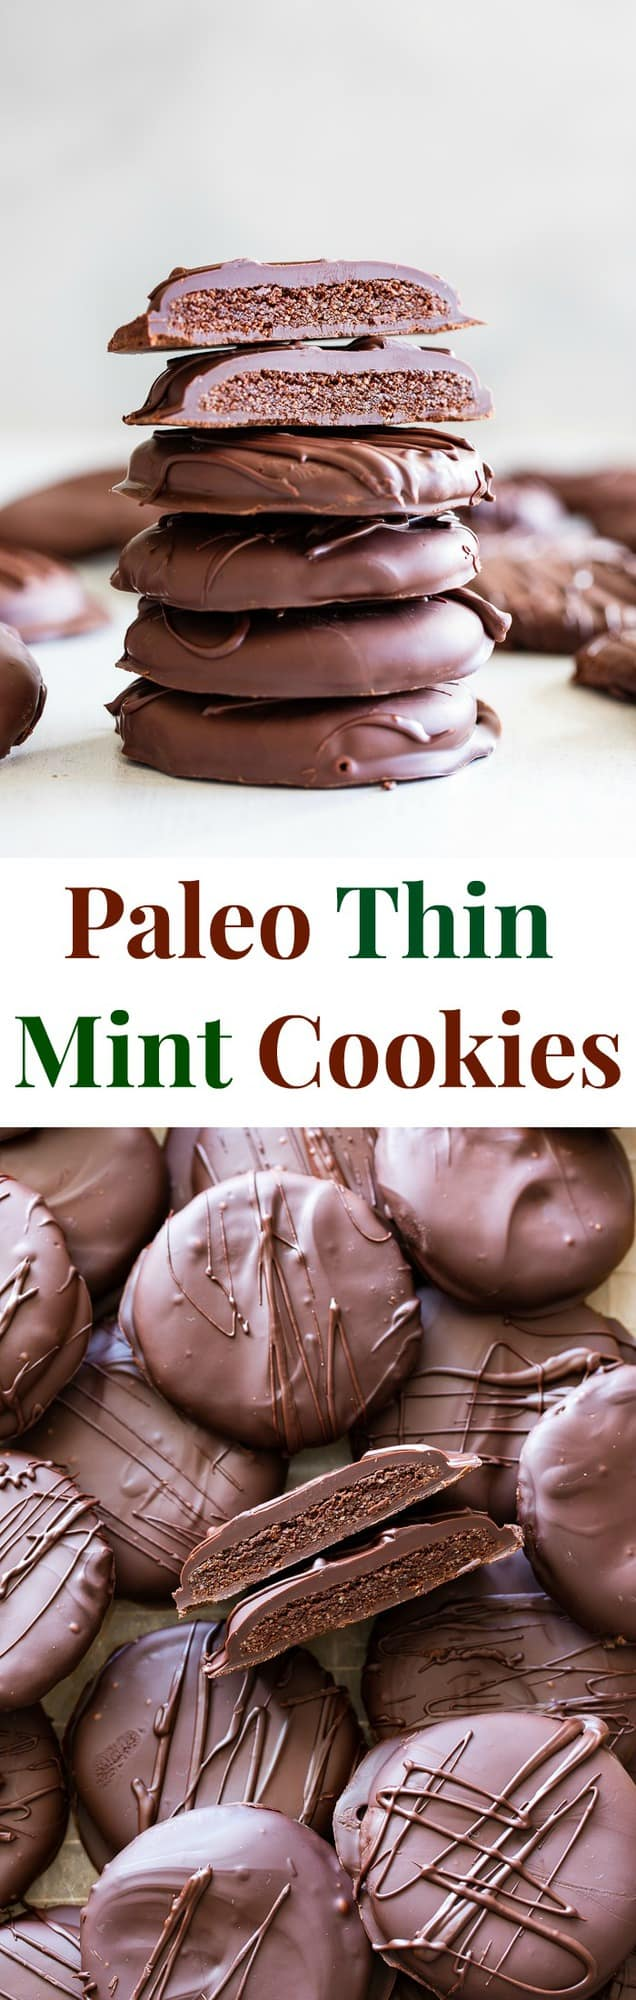 These healthy homemade thin mint cookies are out of this world delicious plus easy and fun to make! Gluten free and paleo mint chocolate sugar cookies are dipped in silky dark mint chocolate to make the best mint chocolate covered cookies that everyone will love!